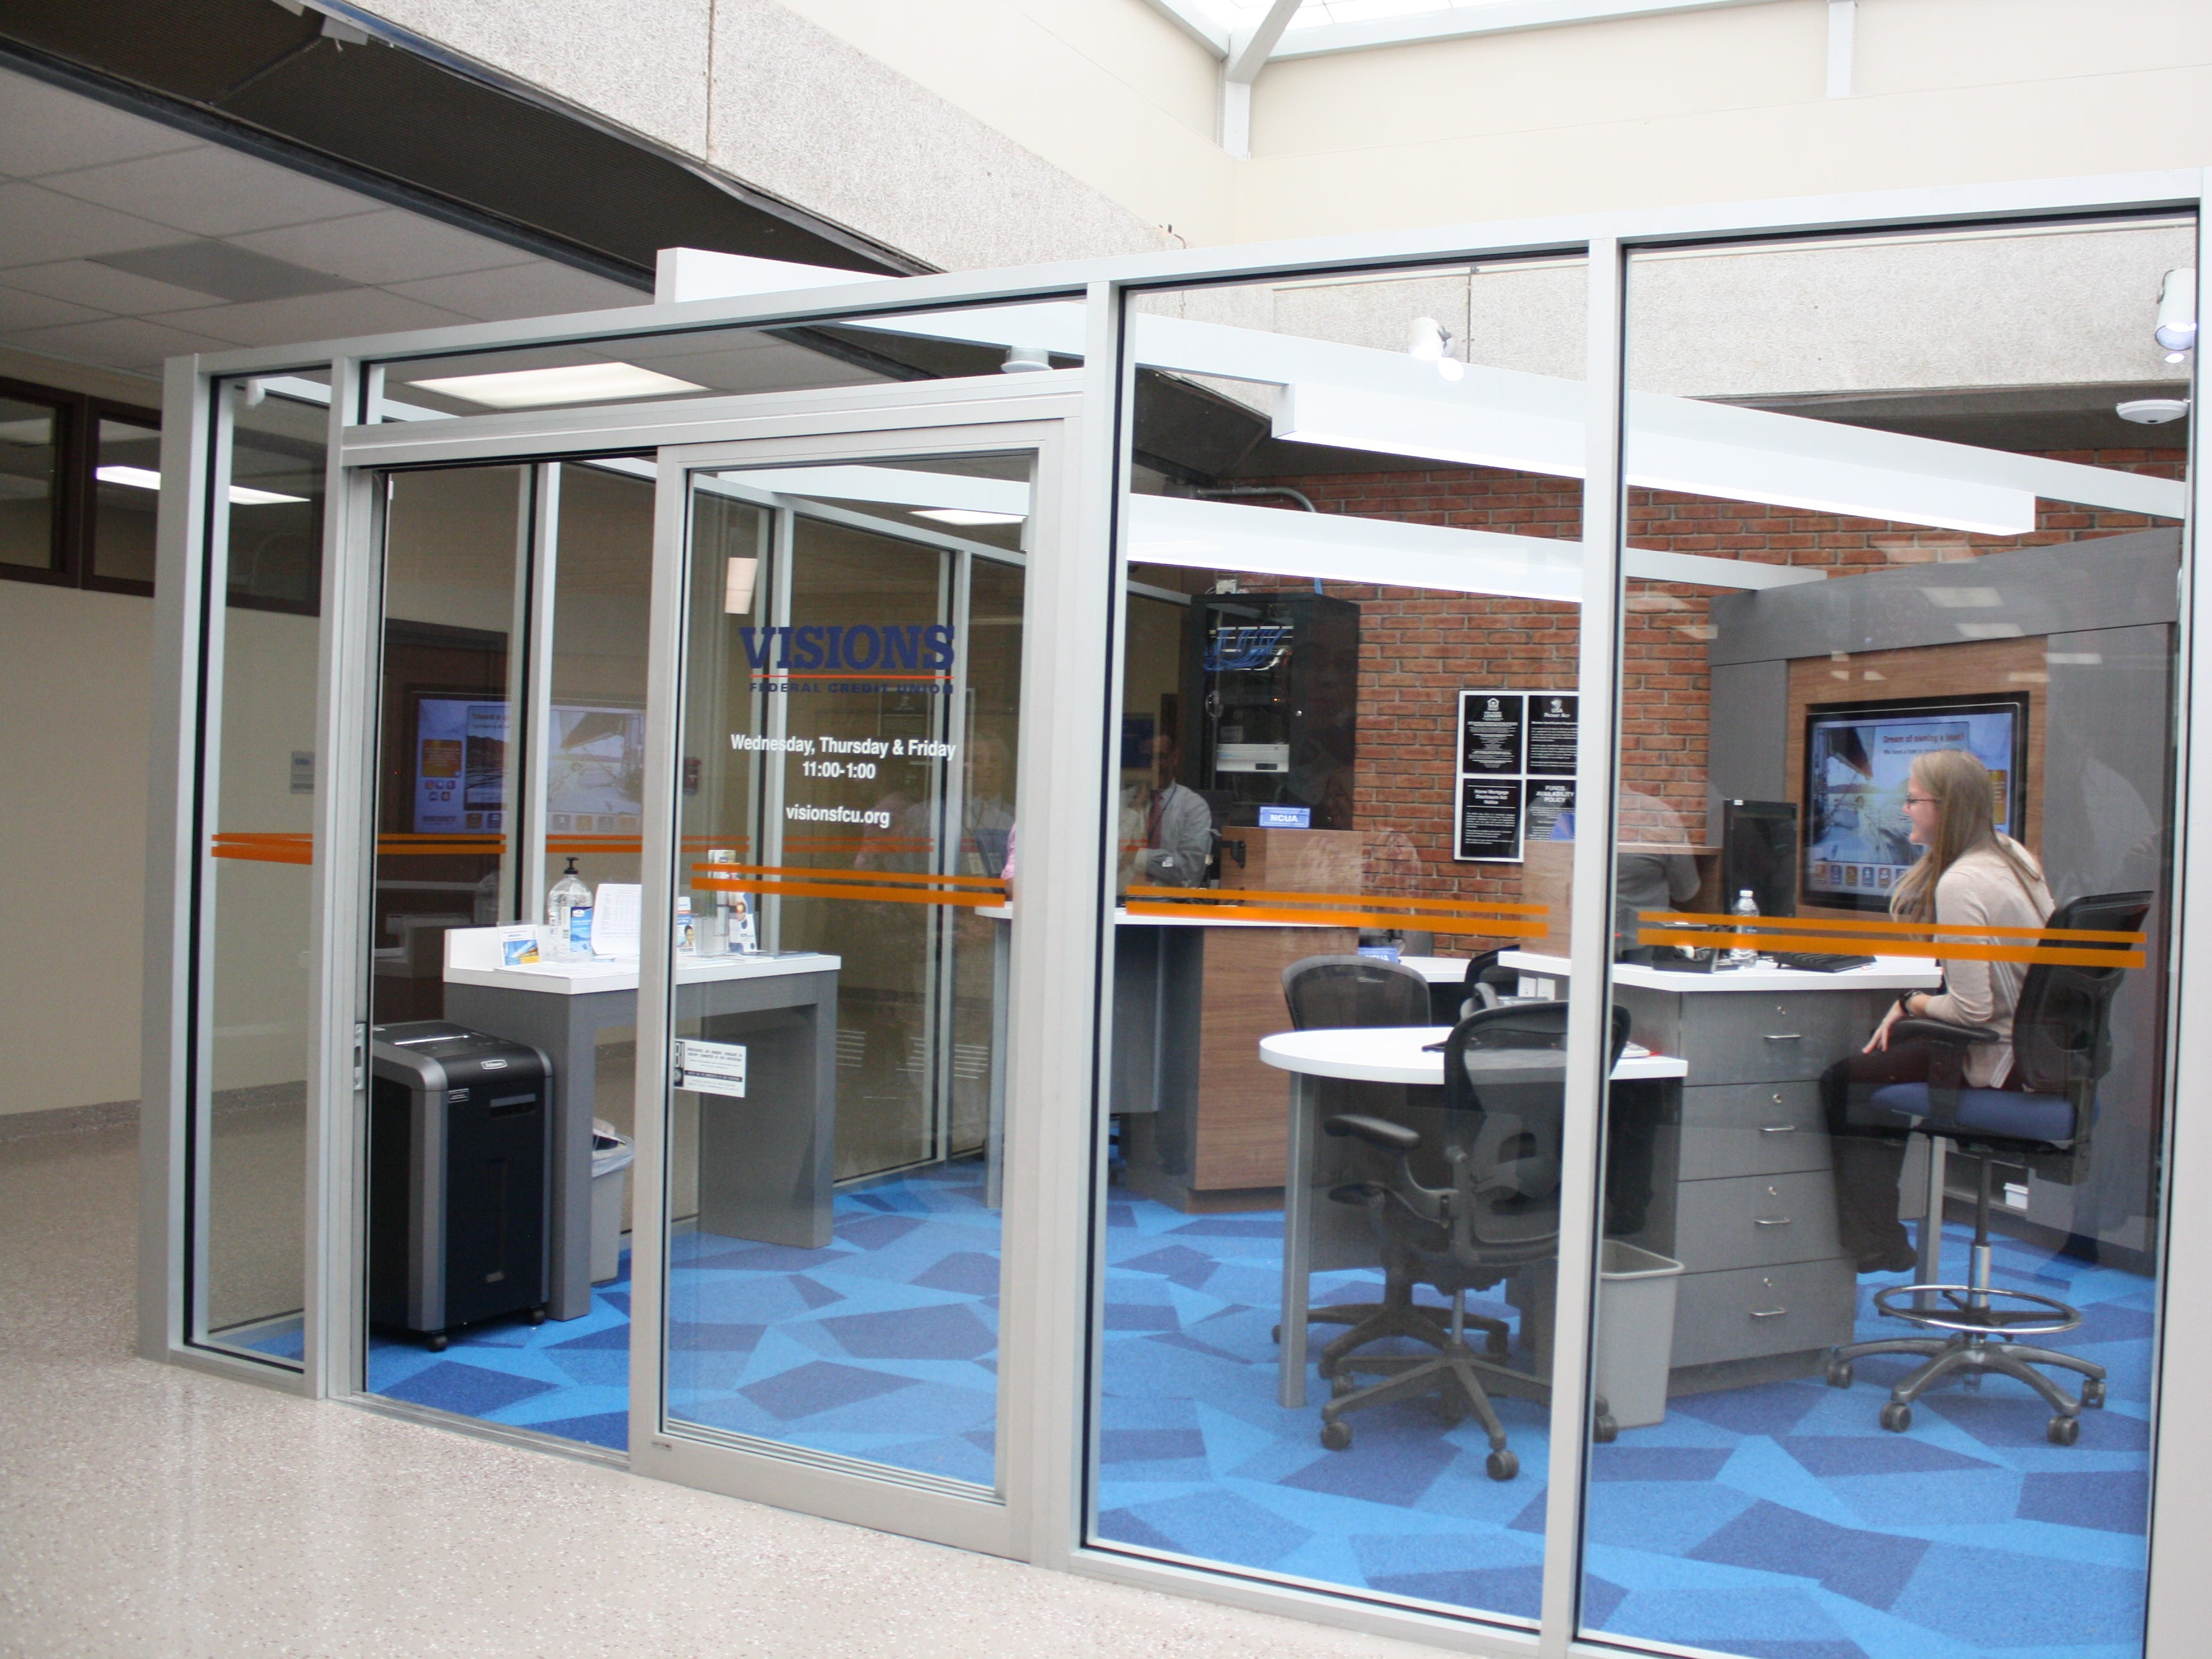 Visions Federal Credit Union opened a new branch office at Broome-Tioga BOCES' main campus in Binghamton in September.